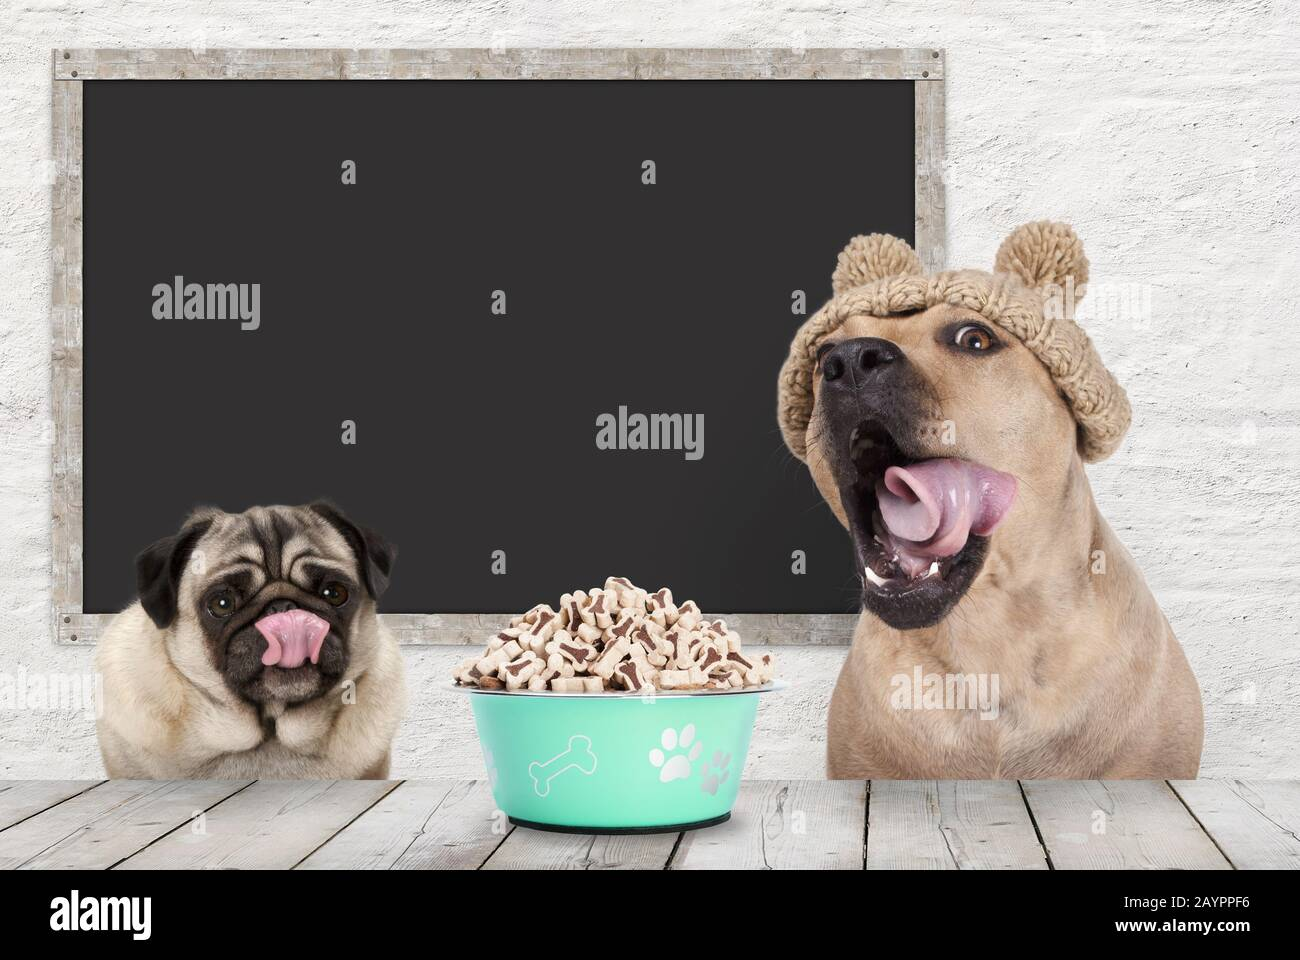 two cute dogs licking their mouth, rolling tongue, waiting for kibble treats, sitting at table, with blank blackboard in background Stock Photo